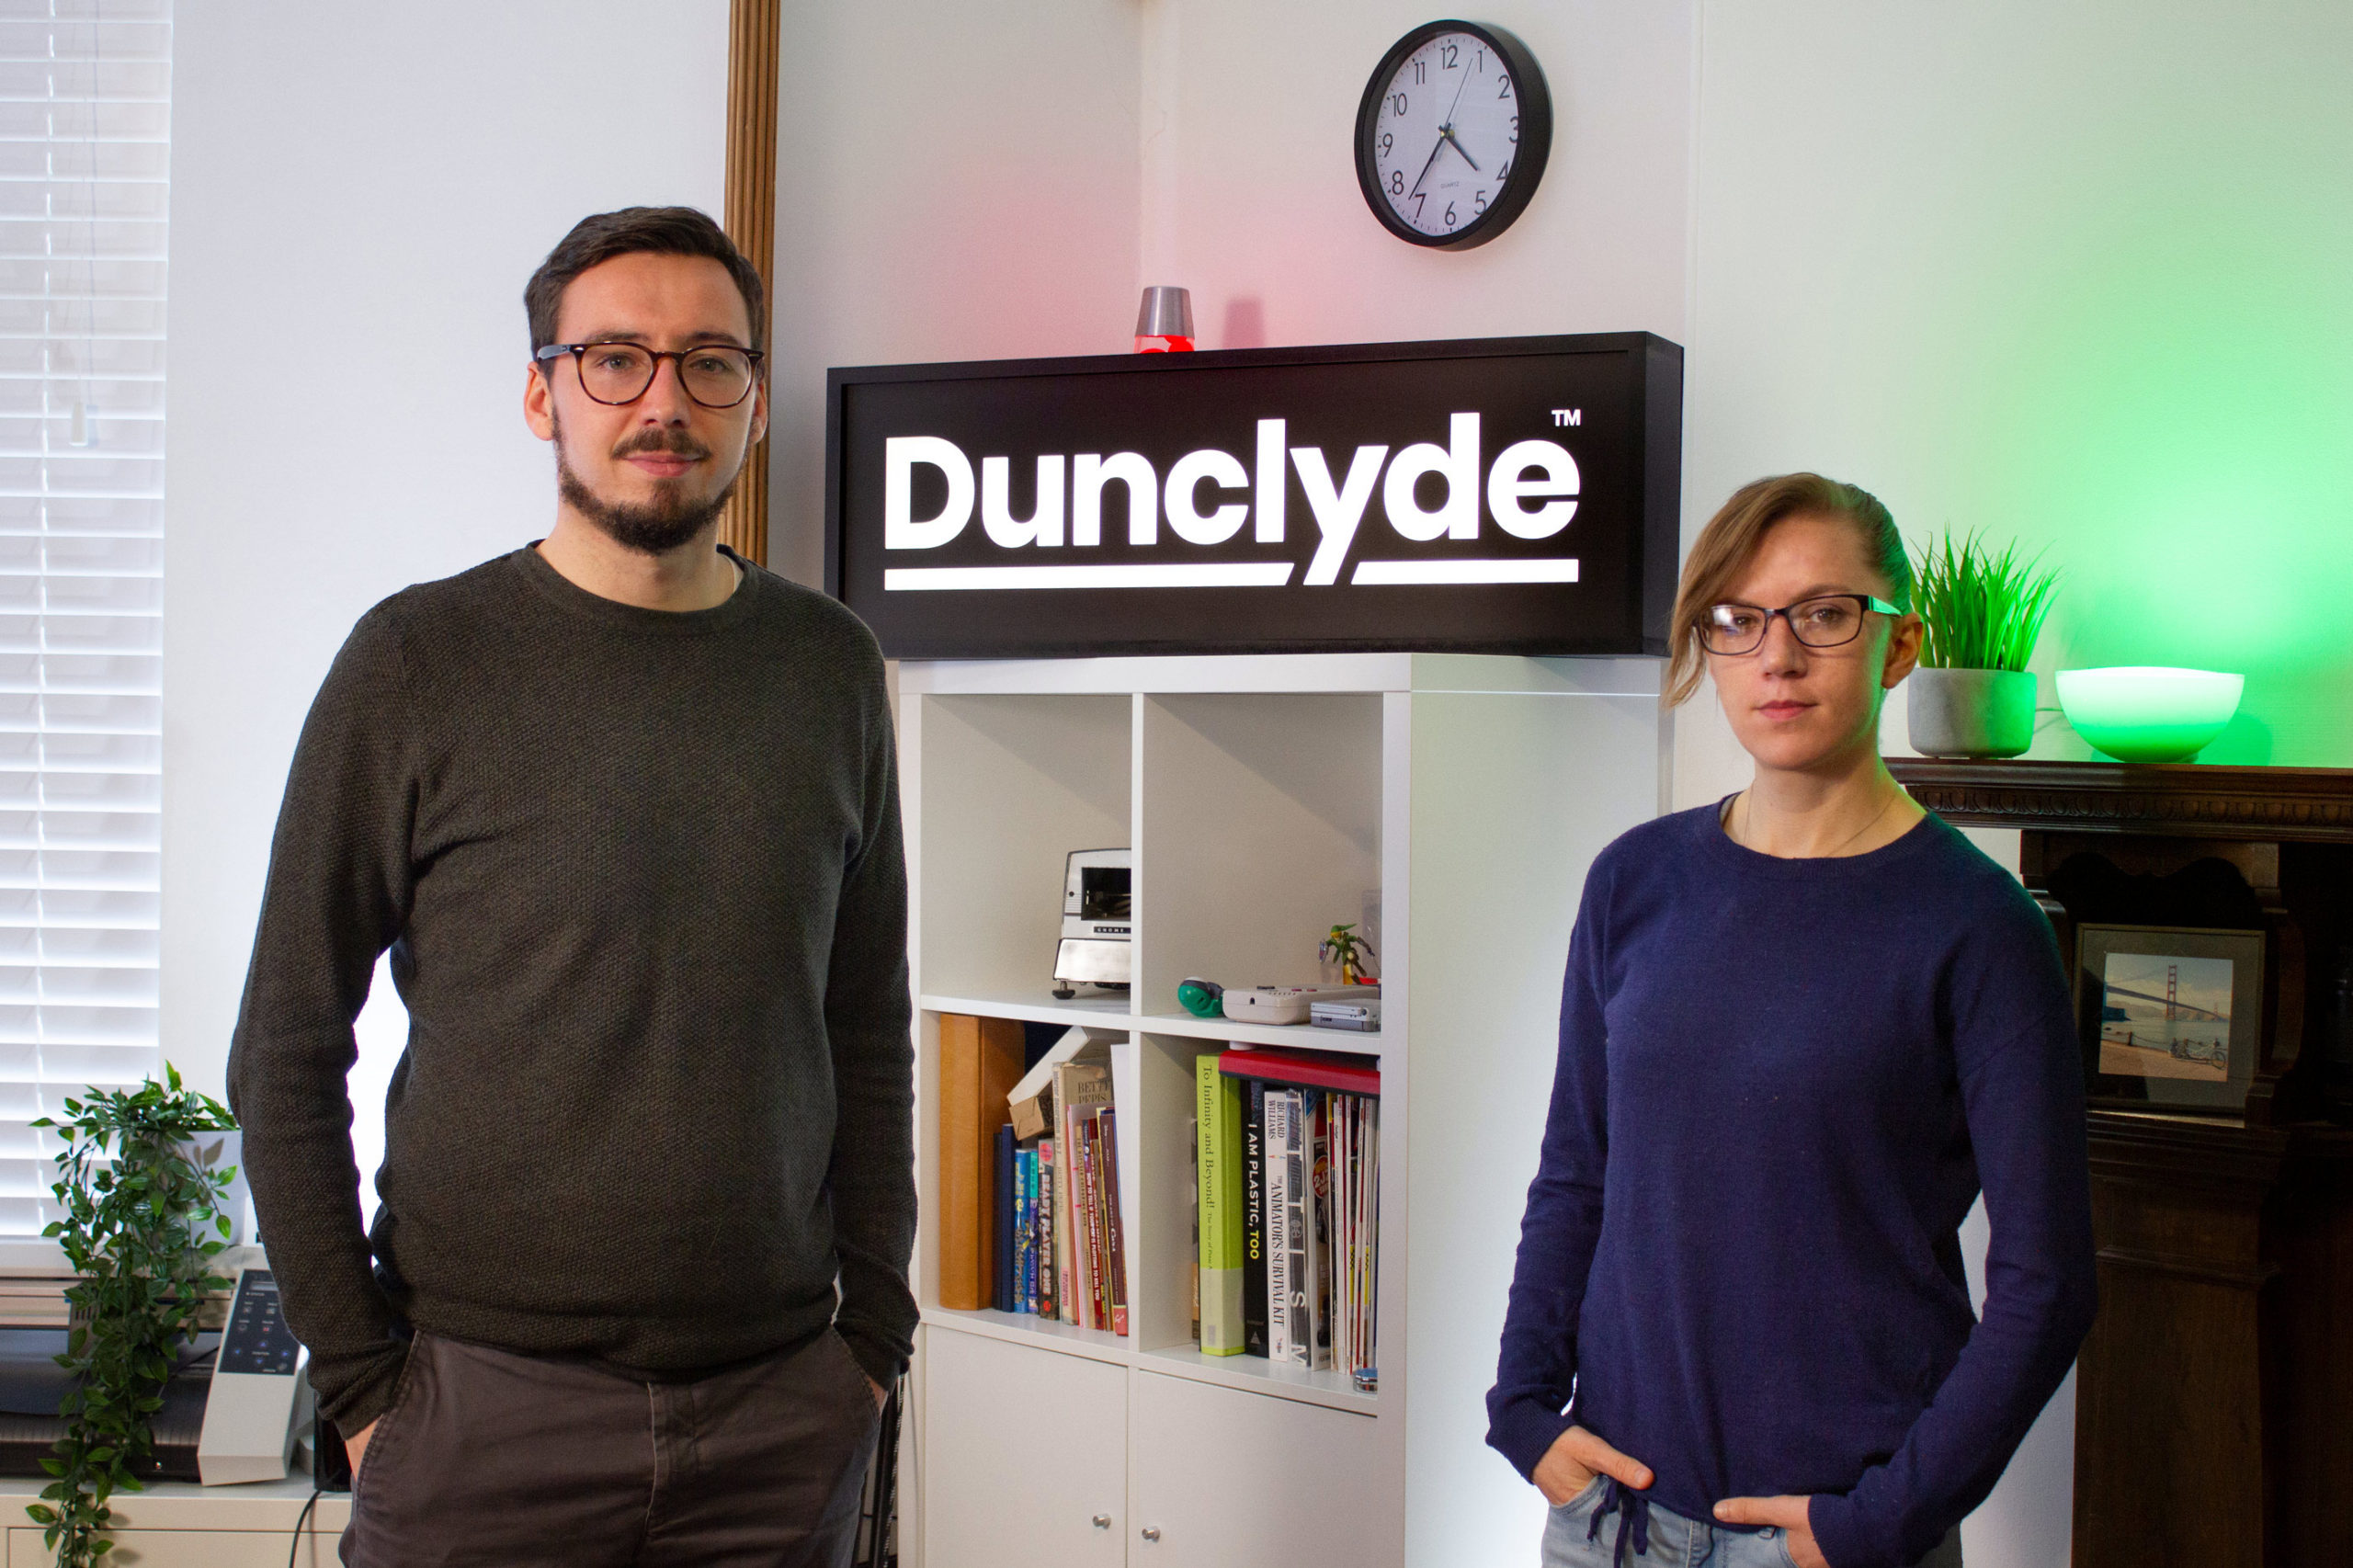 Dunclyde directors Daniel Clydesdale and Eilidh Dunsire